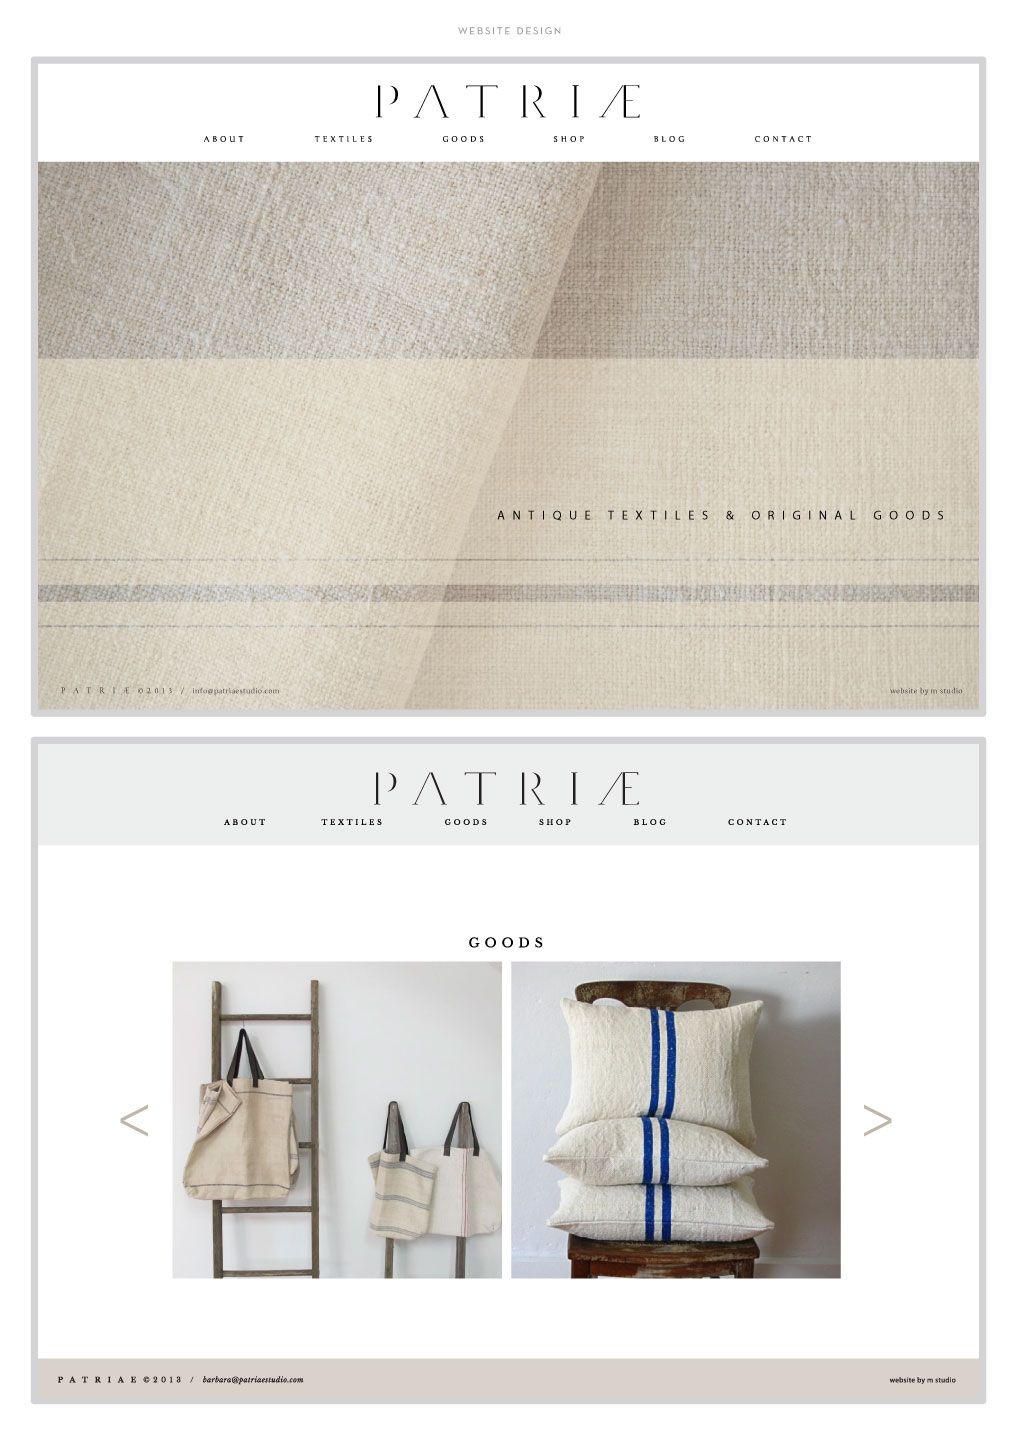 Patriae web design by M studio